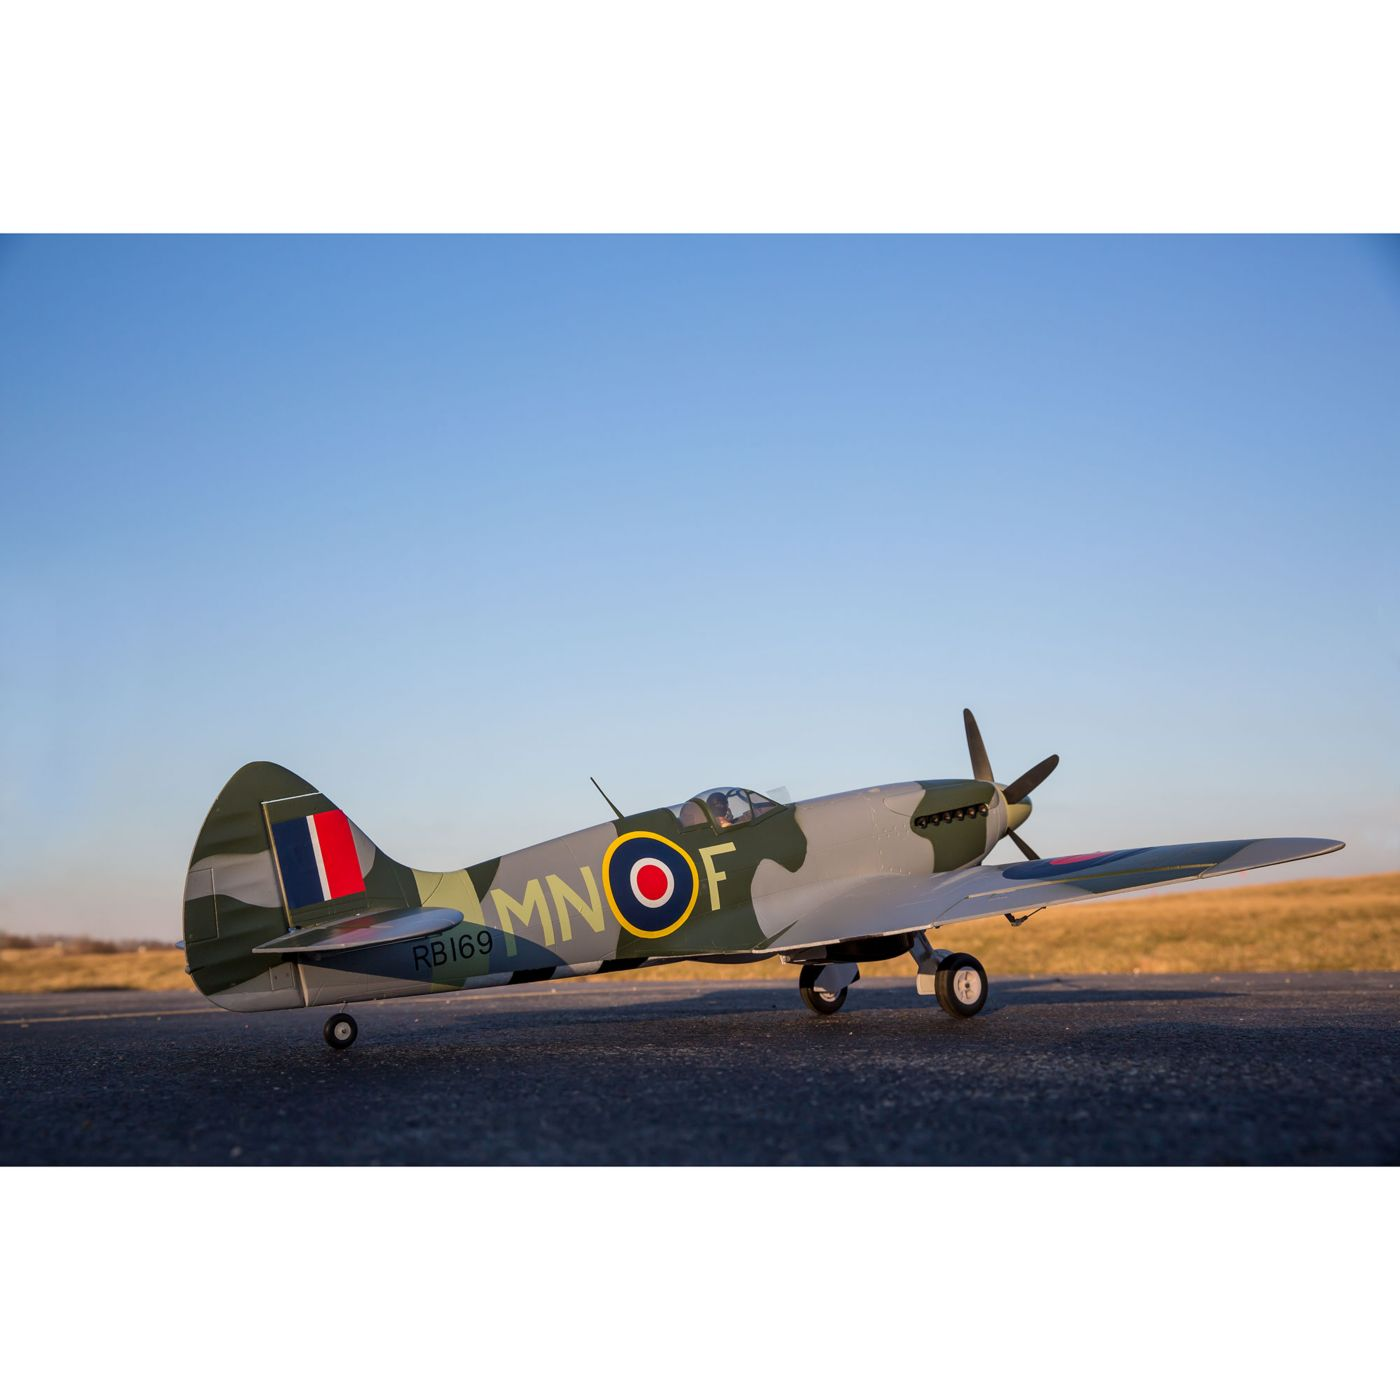 E Flite Spitfire Mk Xiv 12m Bnf Basic Scale Rc Warbird Airplane 3 Channel Wiring Diagrams With As3x And Safe Select